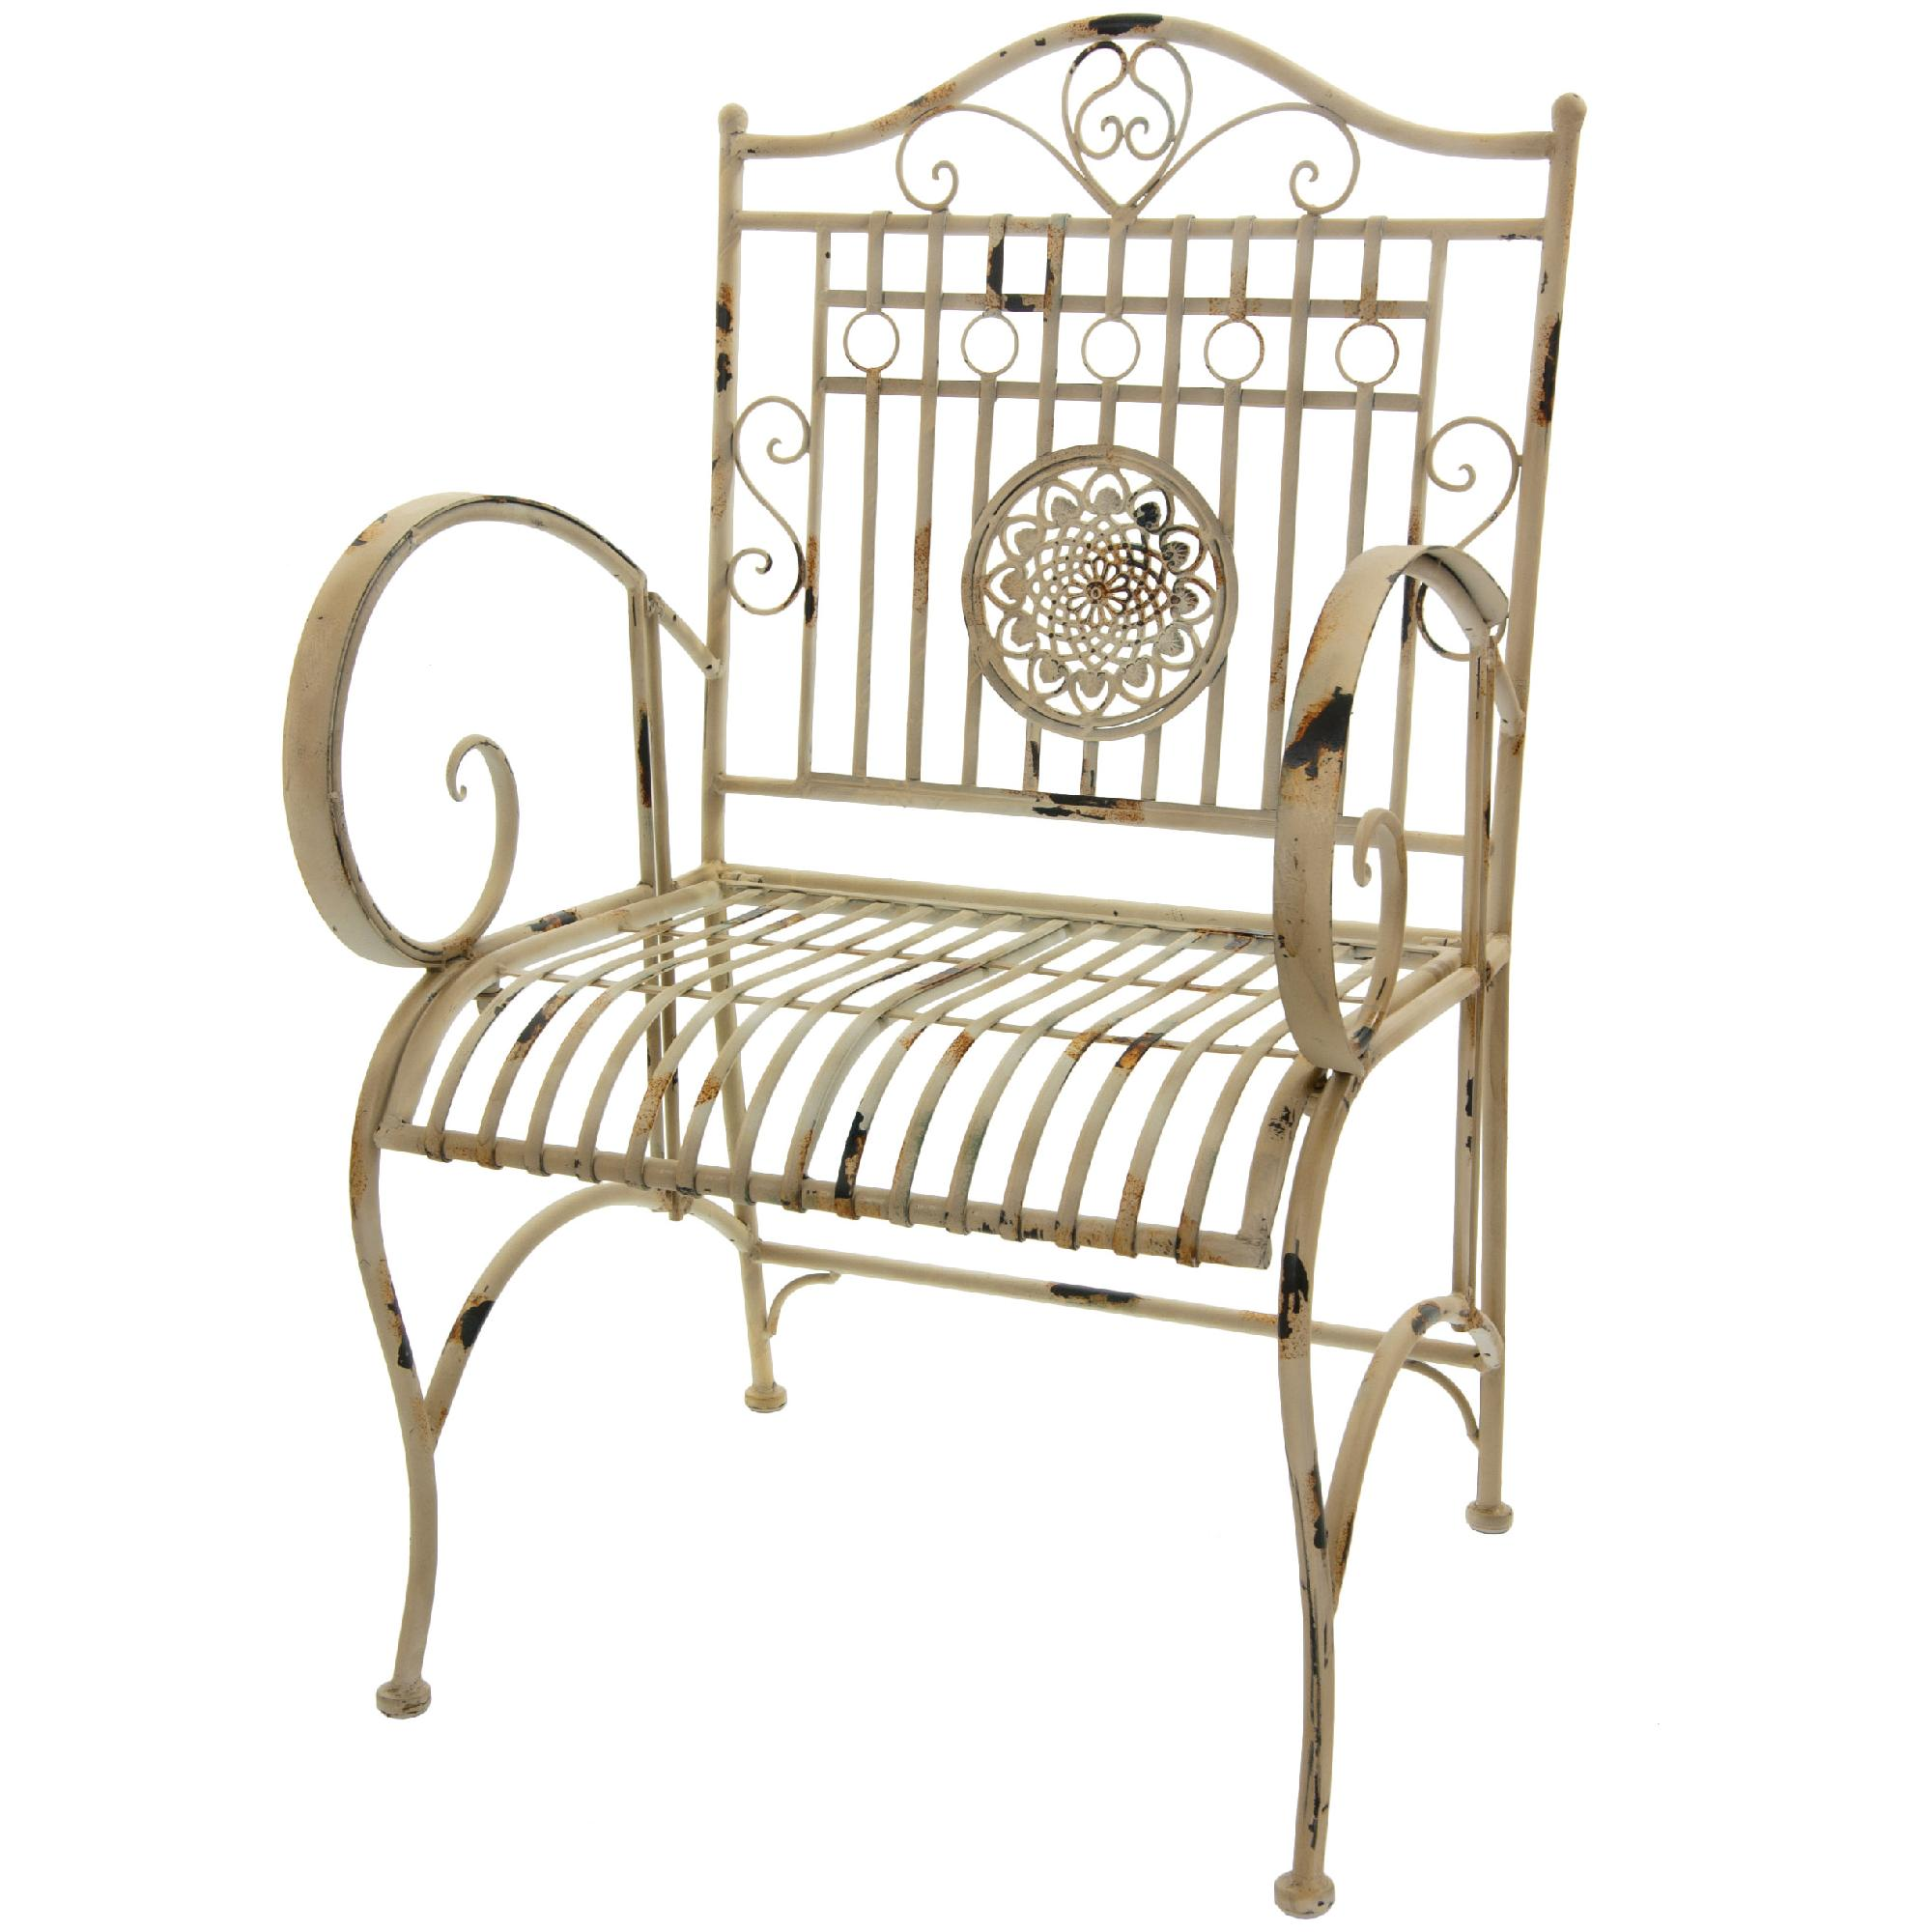 wrought iron chair telescopic camping chairs oriental furniture rustic garden